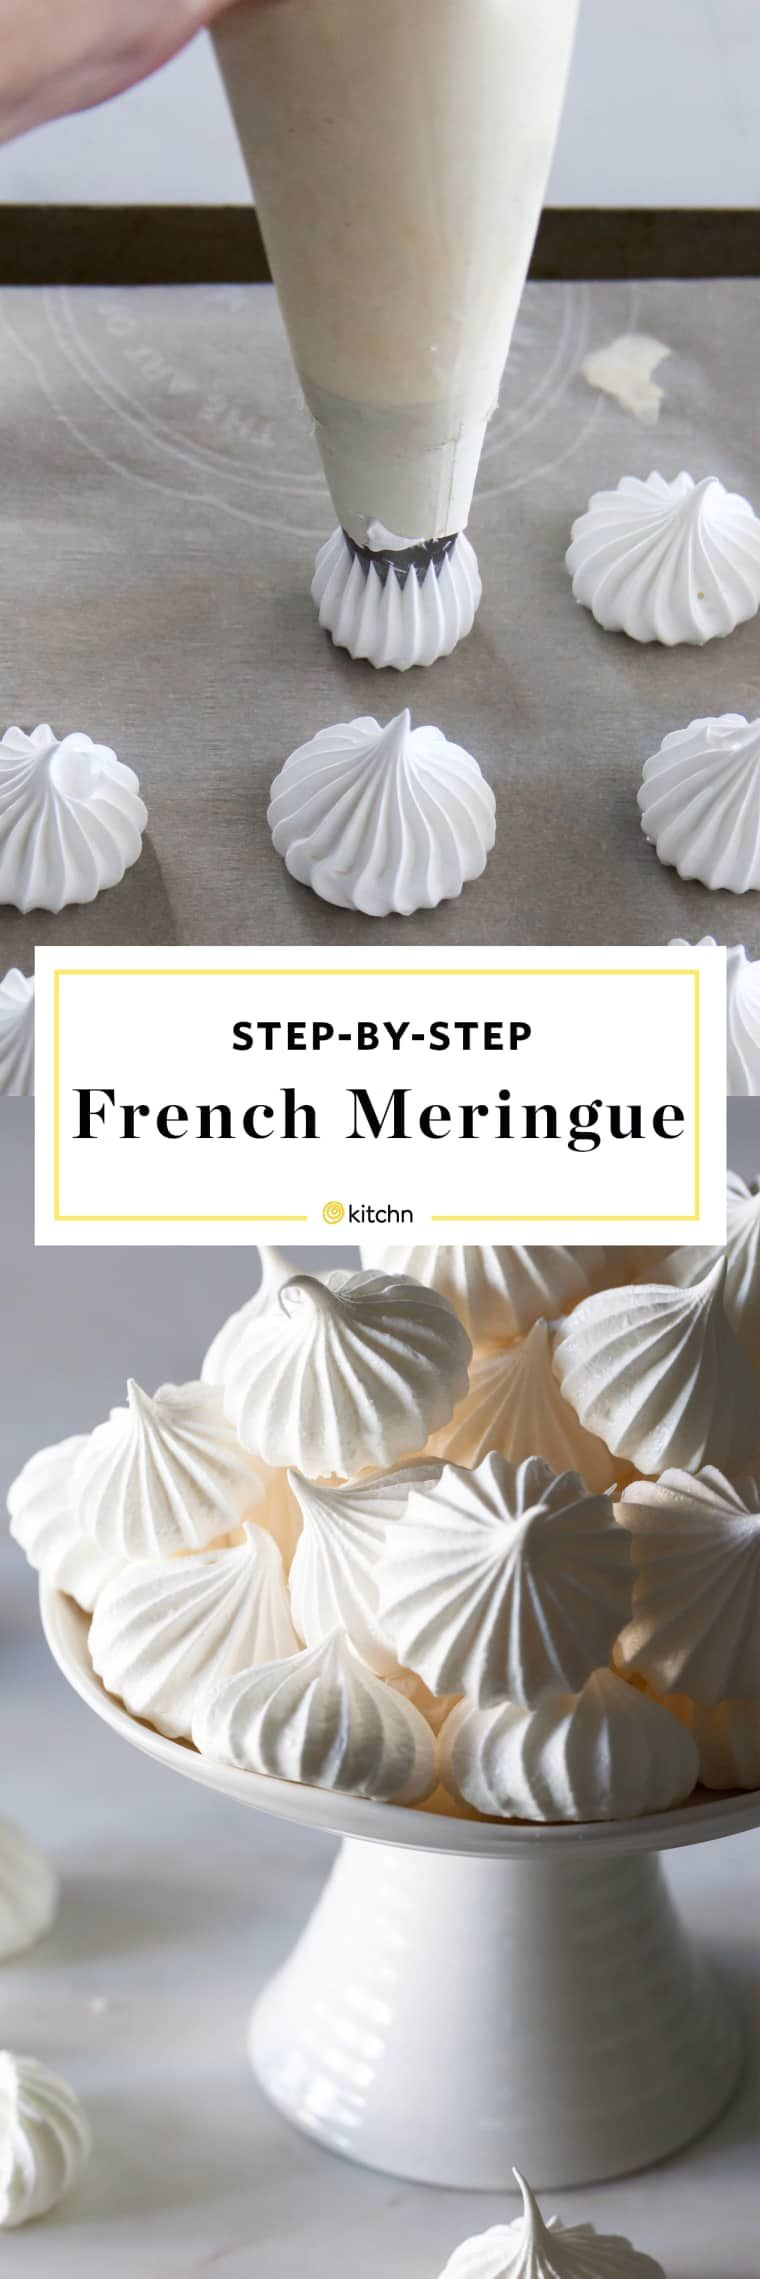 How To Make French Meringue | Kitchn